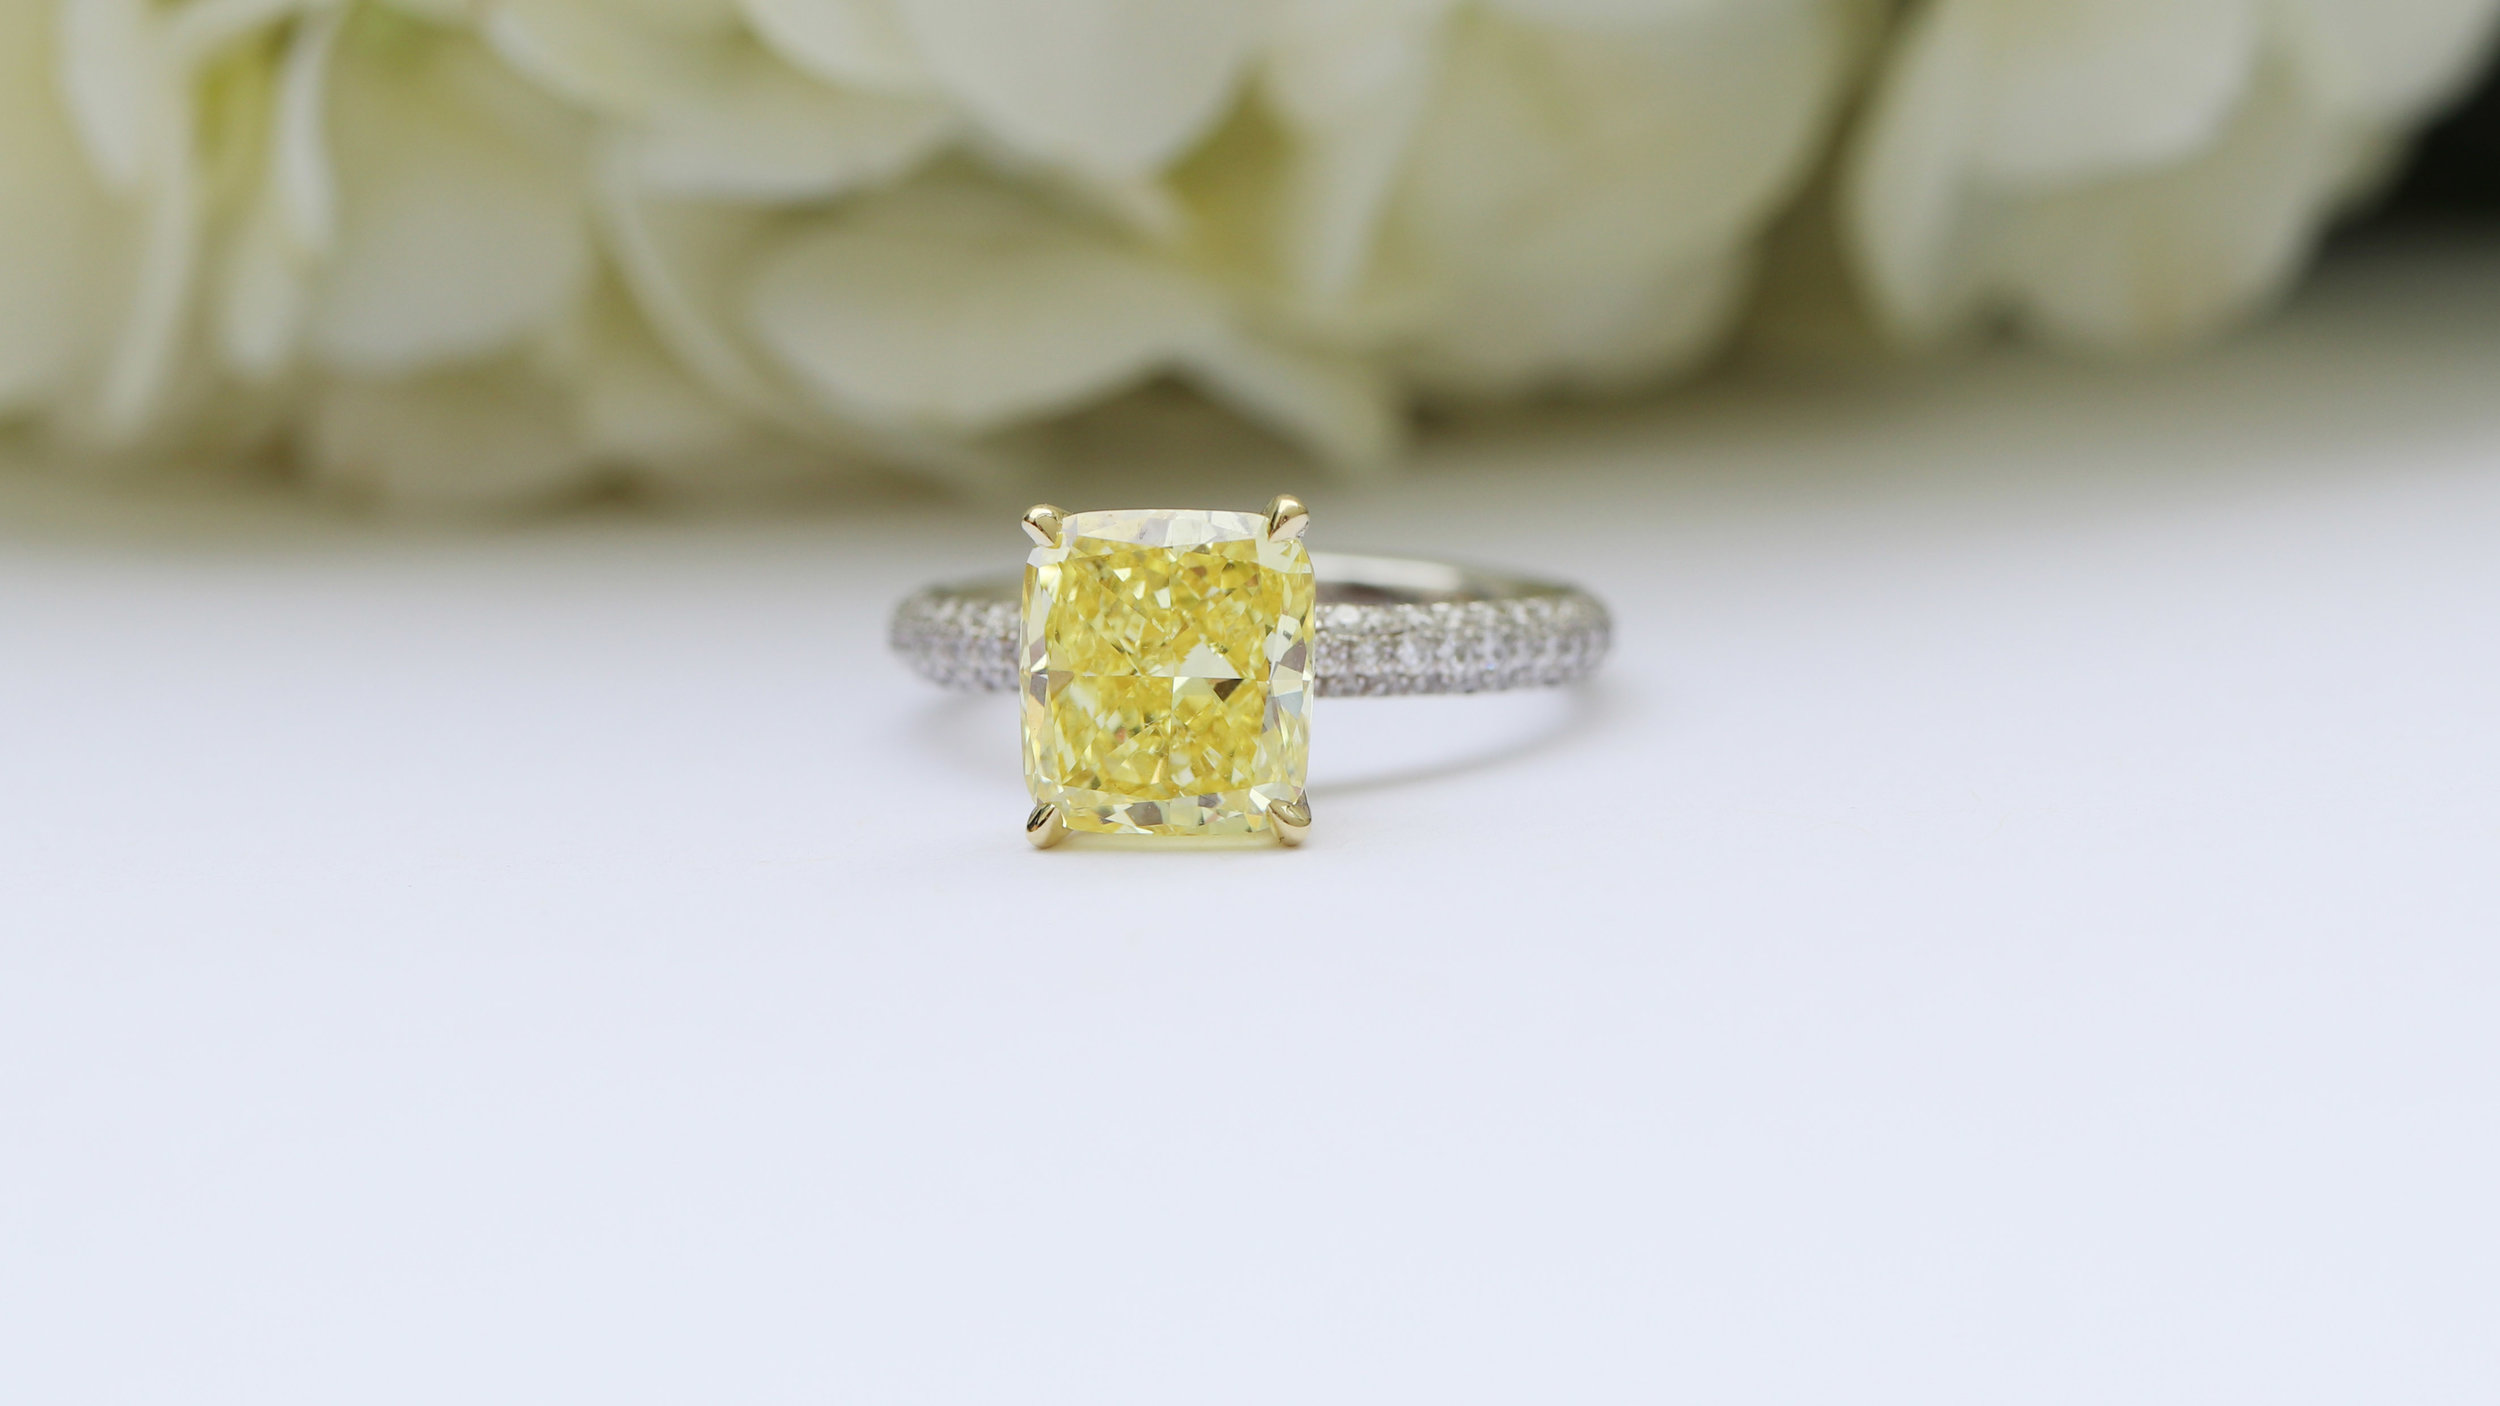 Custom lab diamond engagement ring with fancy yellow radiant lab grown diamond center stone and a white diamond band